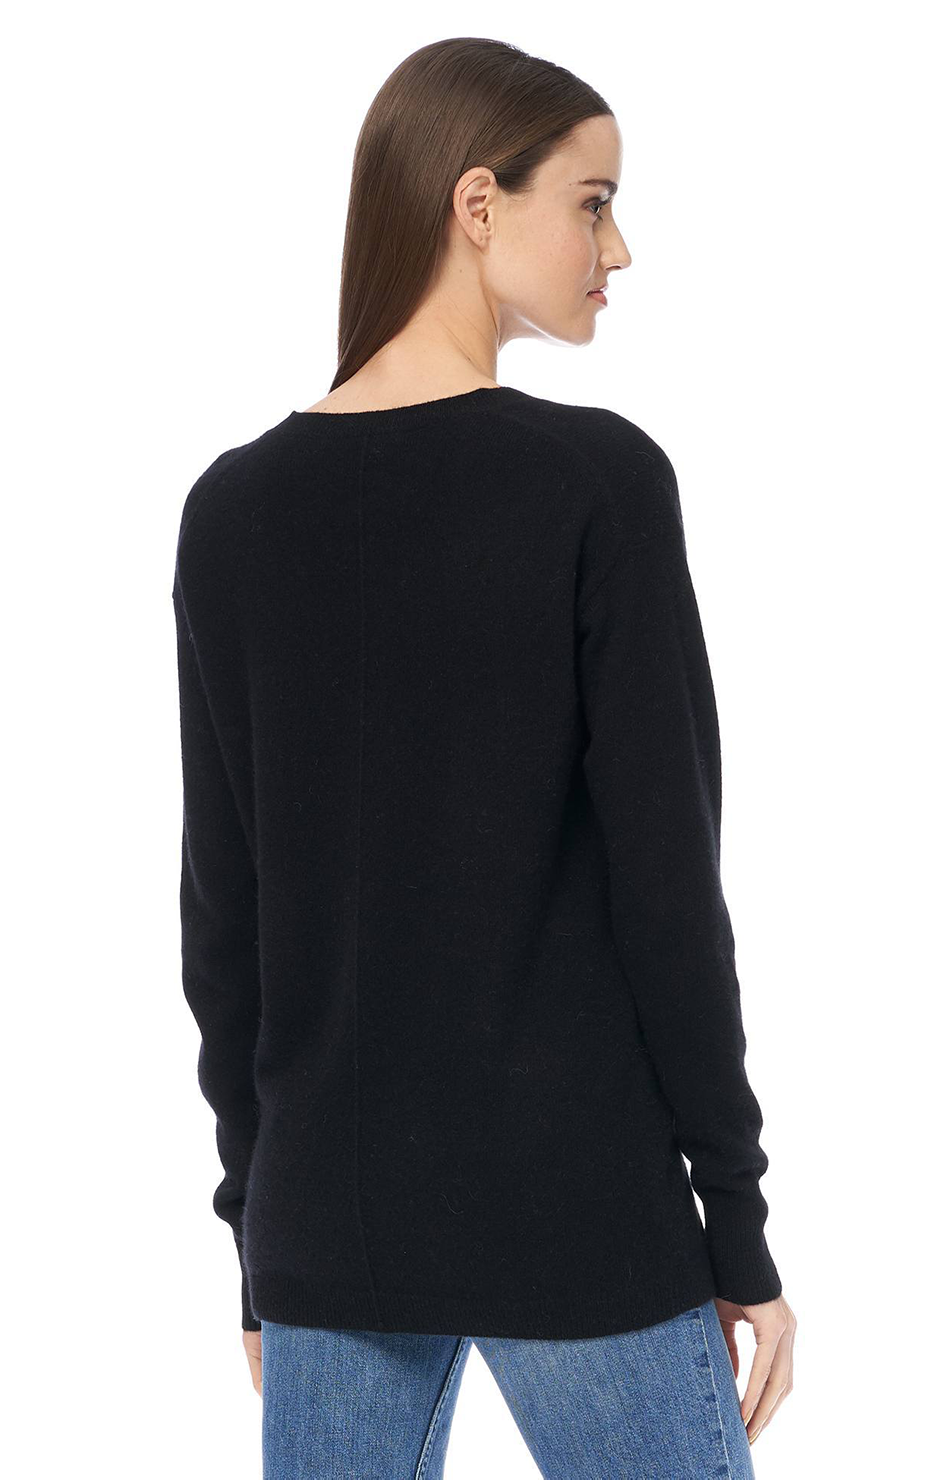 Posie Sweater - Black